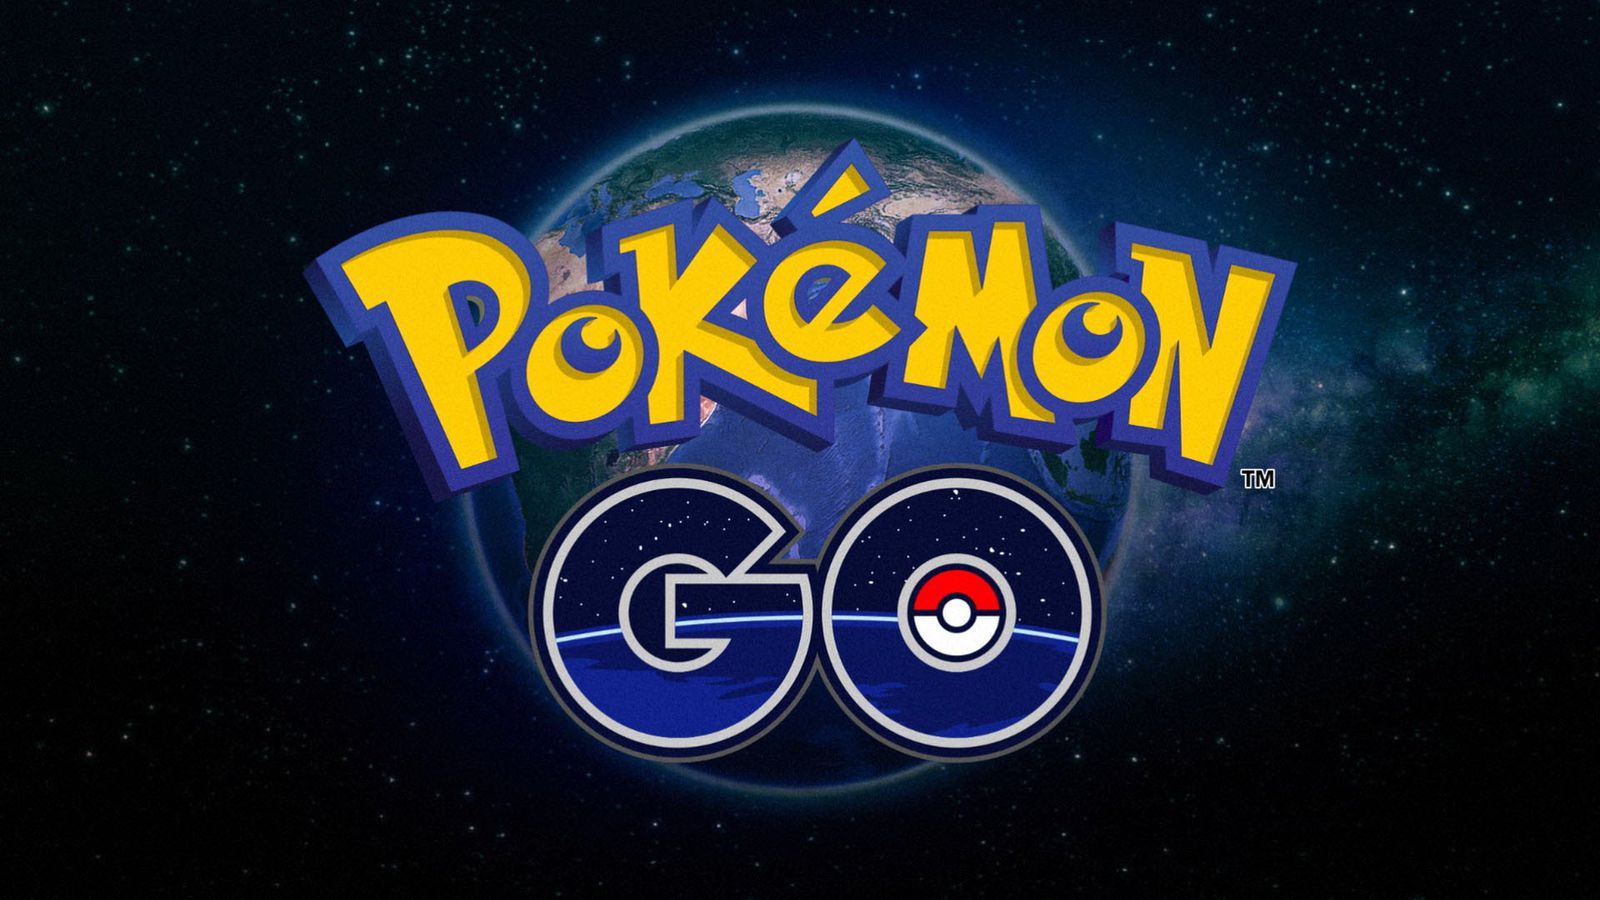 Modojo | Pokemon Go To Add 'Abbreviated' Trading And Battling